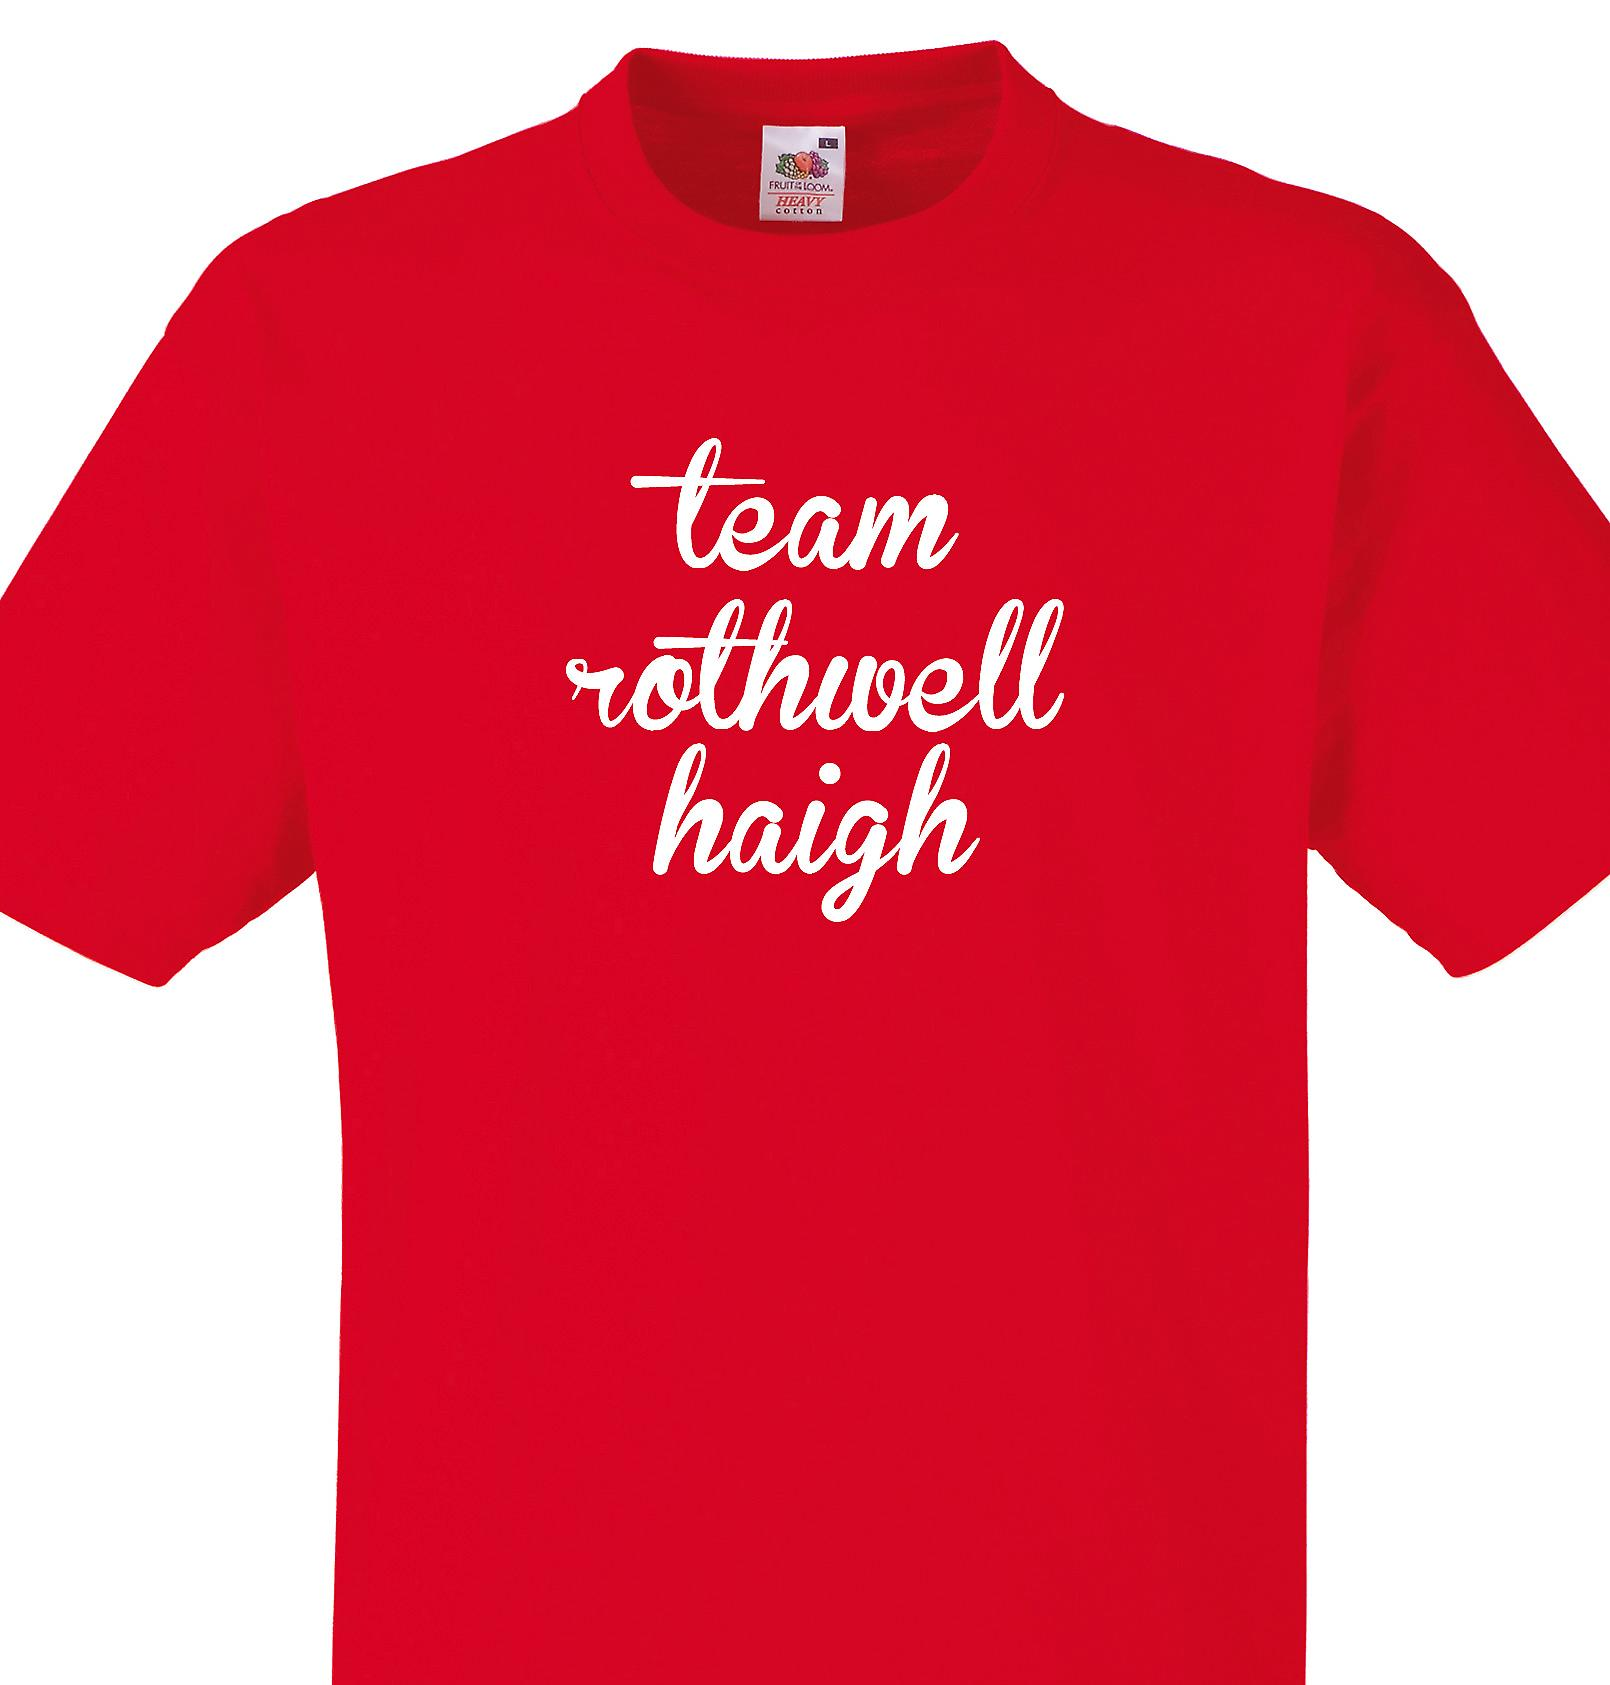 Team Rothwell haigh Red T shirt